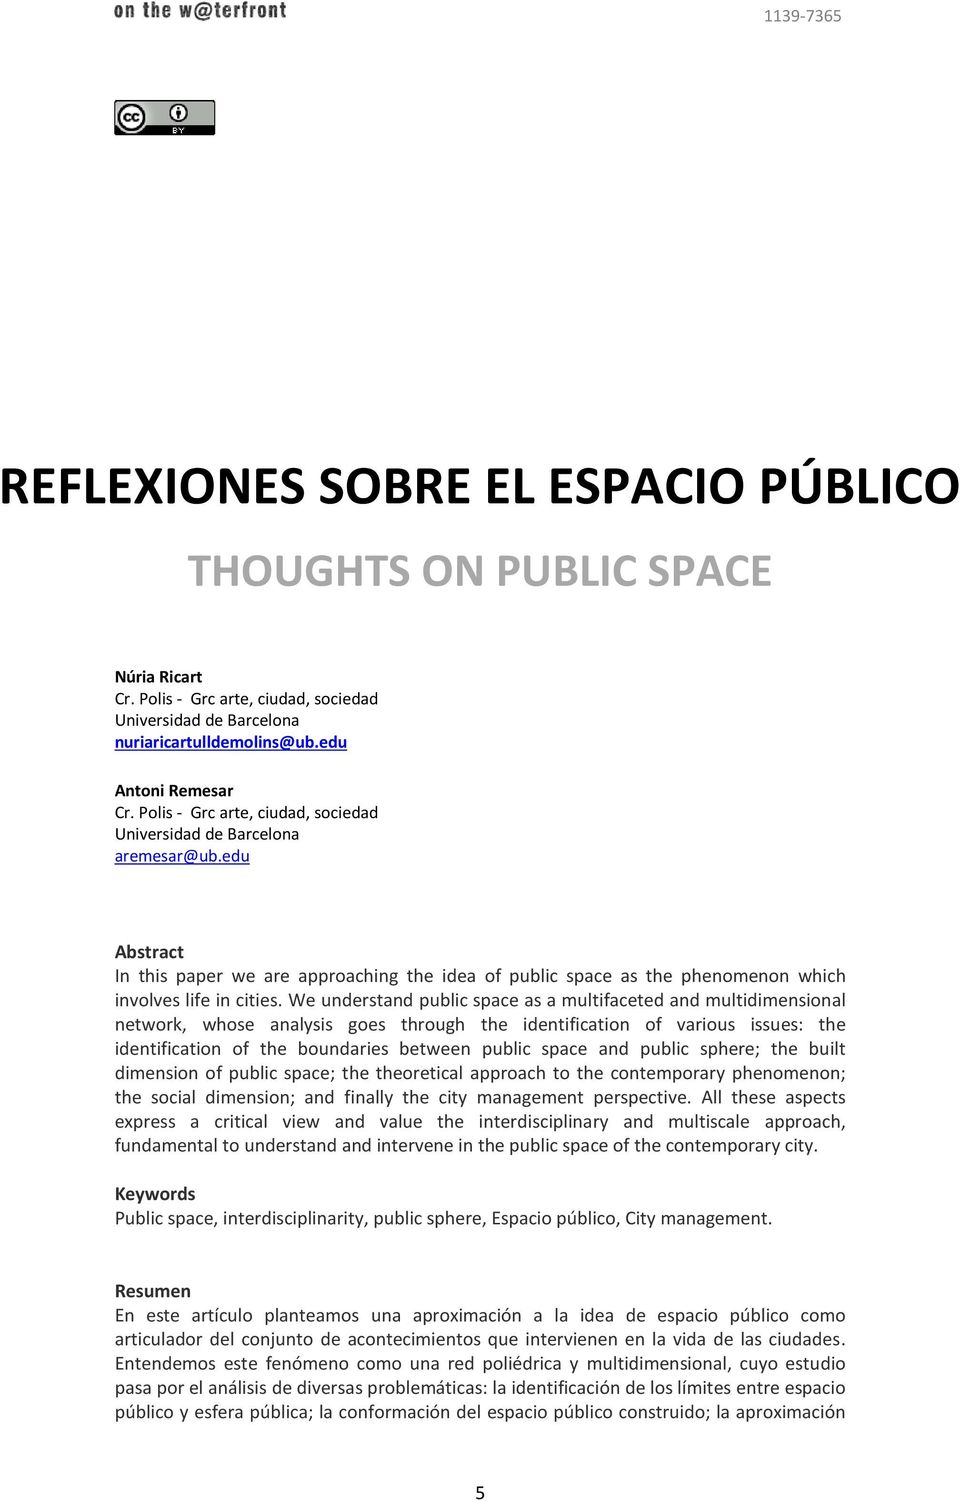 We understand public space as a multifaceted and multidimensional network, whose analysis goes through the identification of various issues: the identification of the boundaries between public space